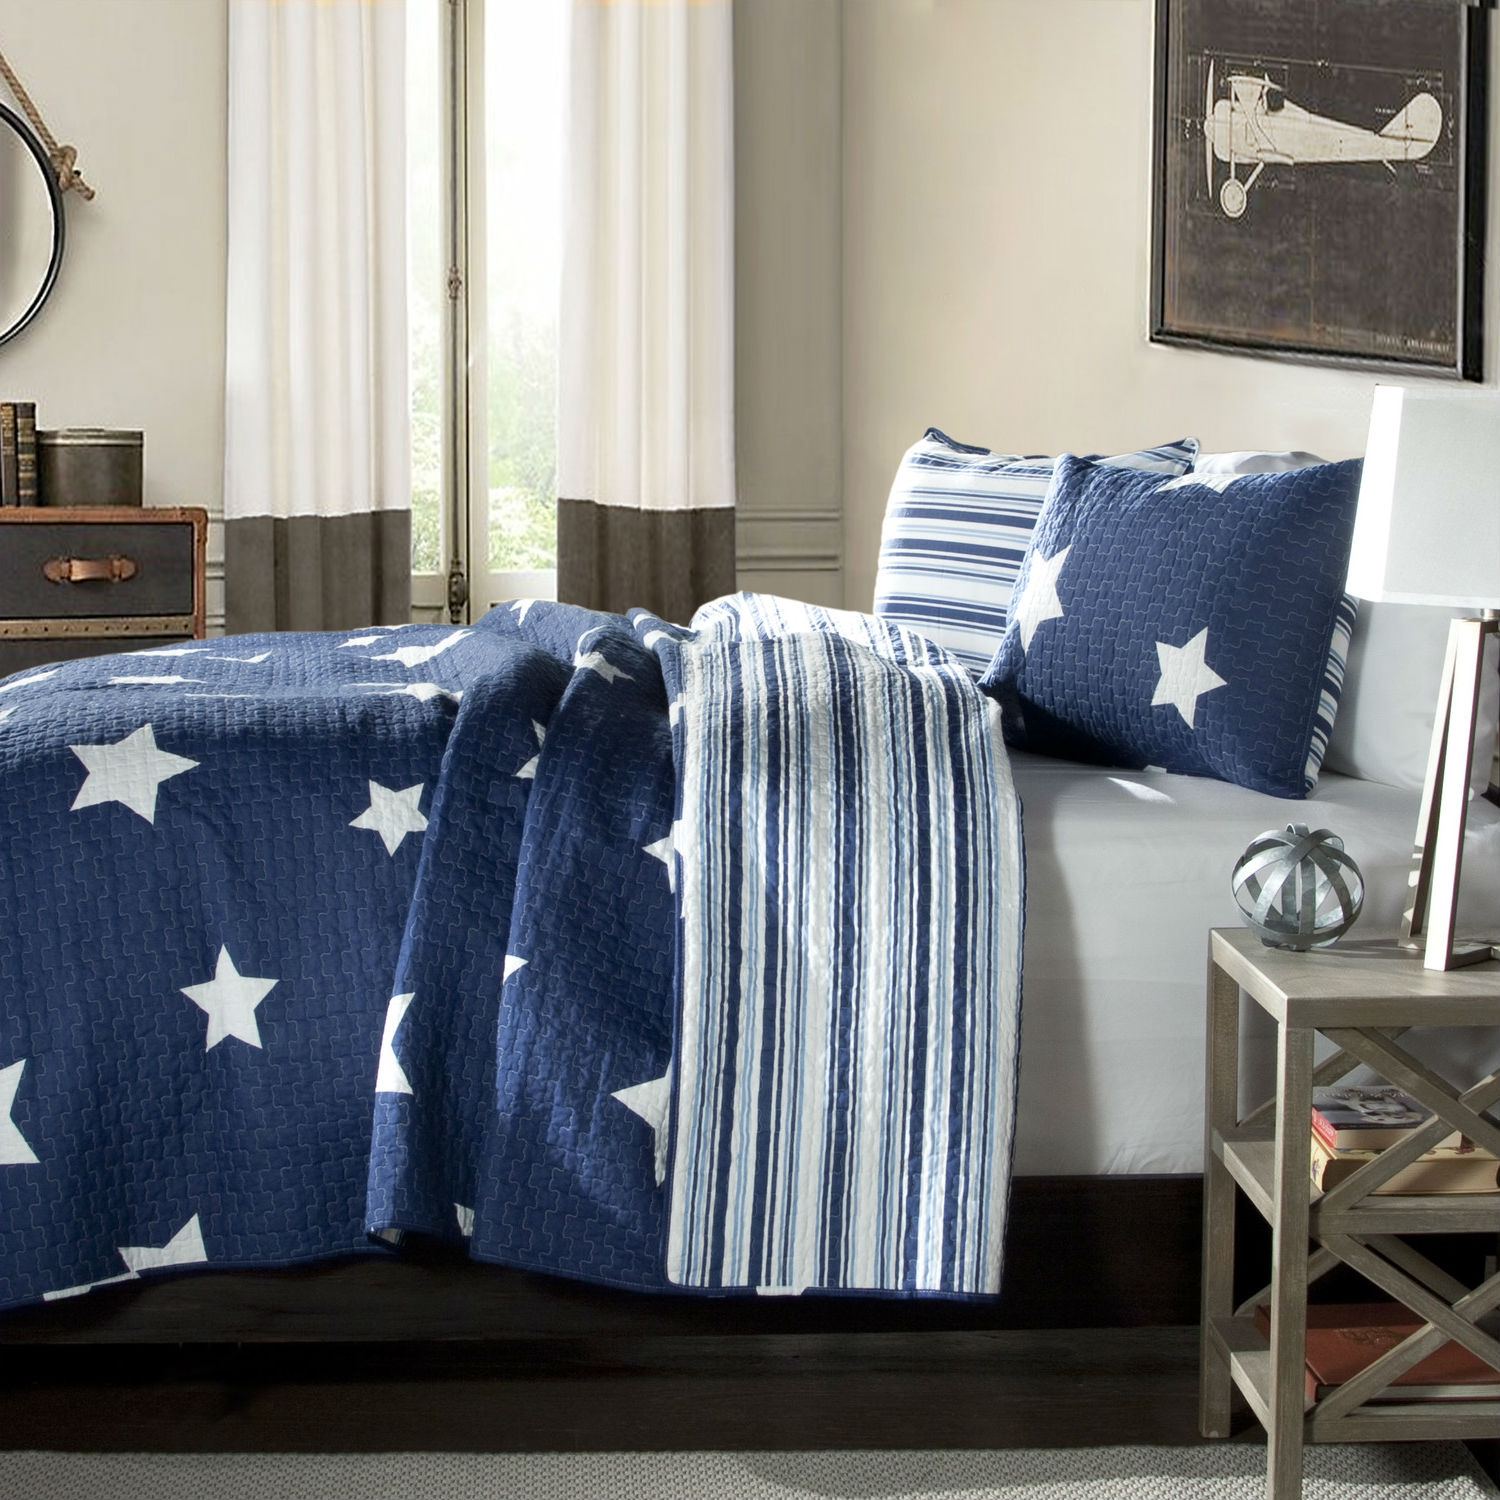 Image of: Queen Navy Star And Stripes